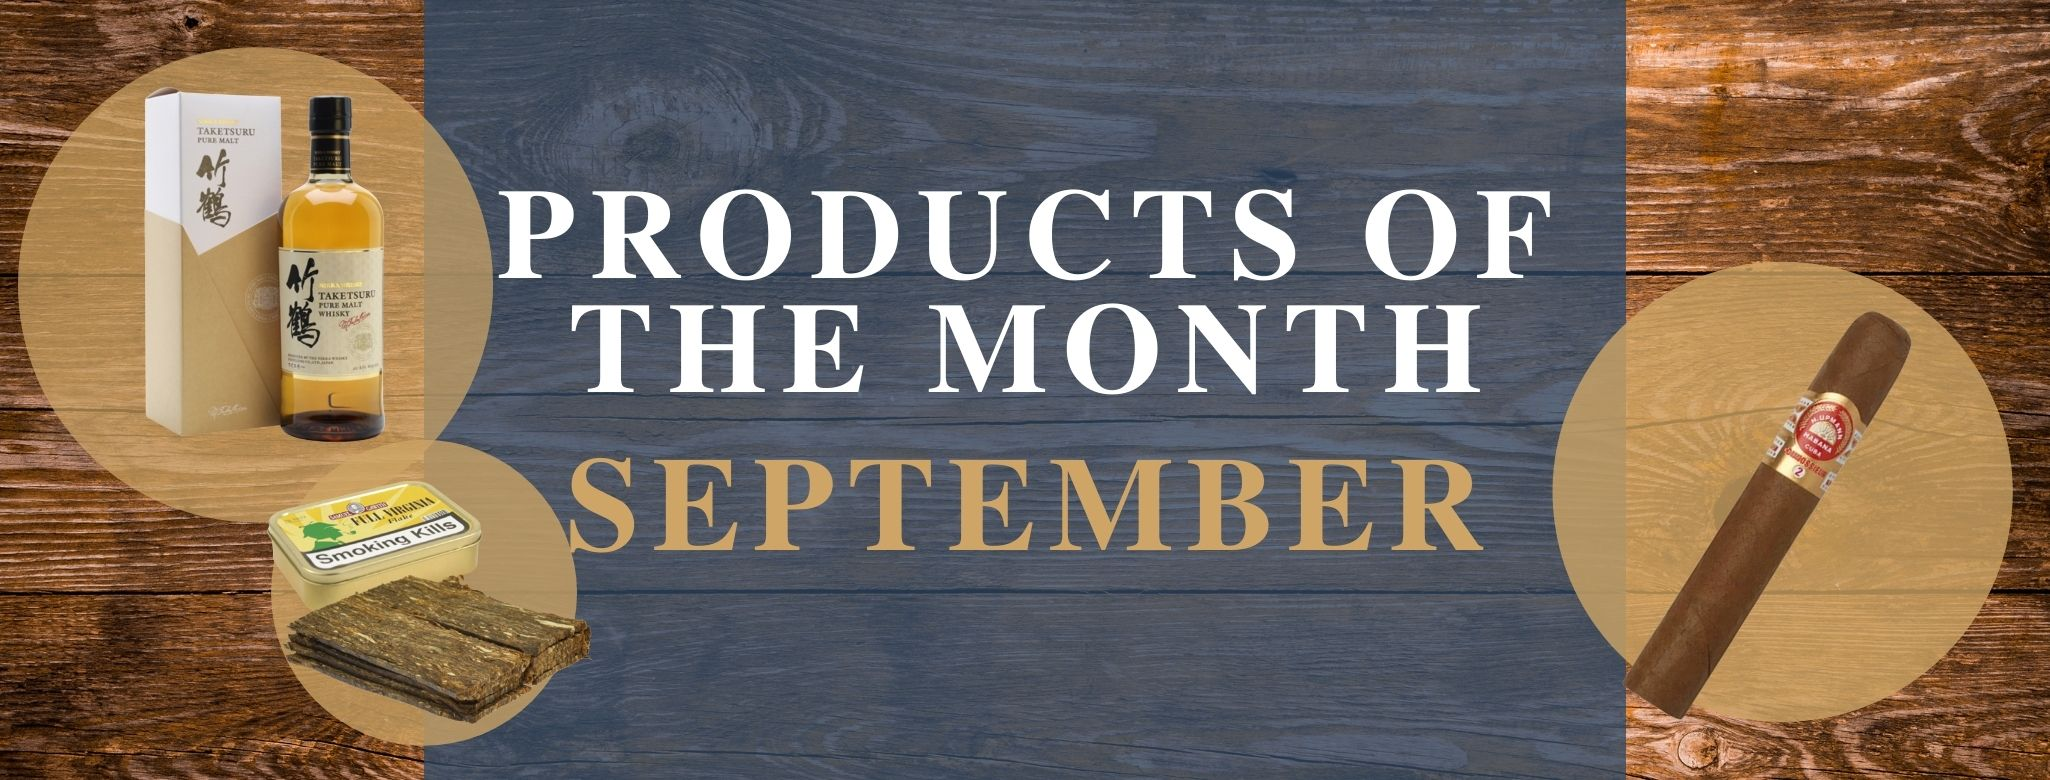 Products of the Month for September